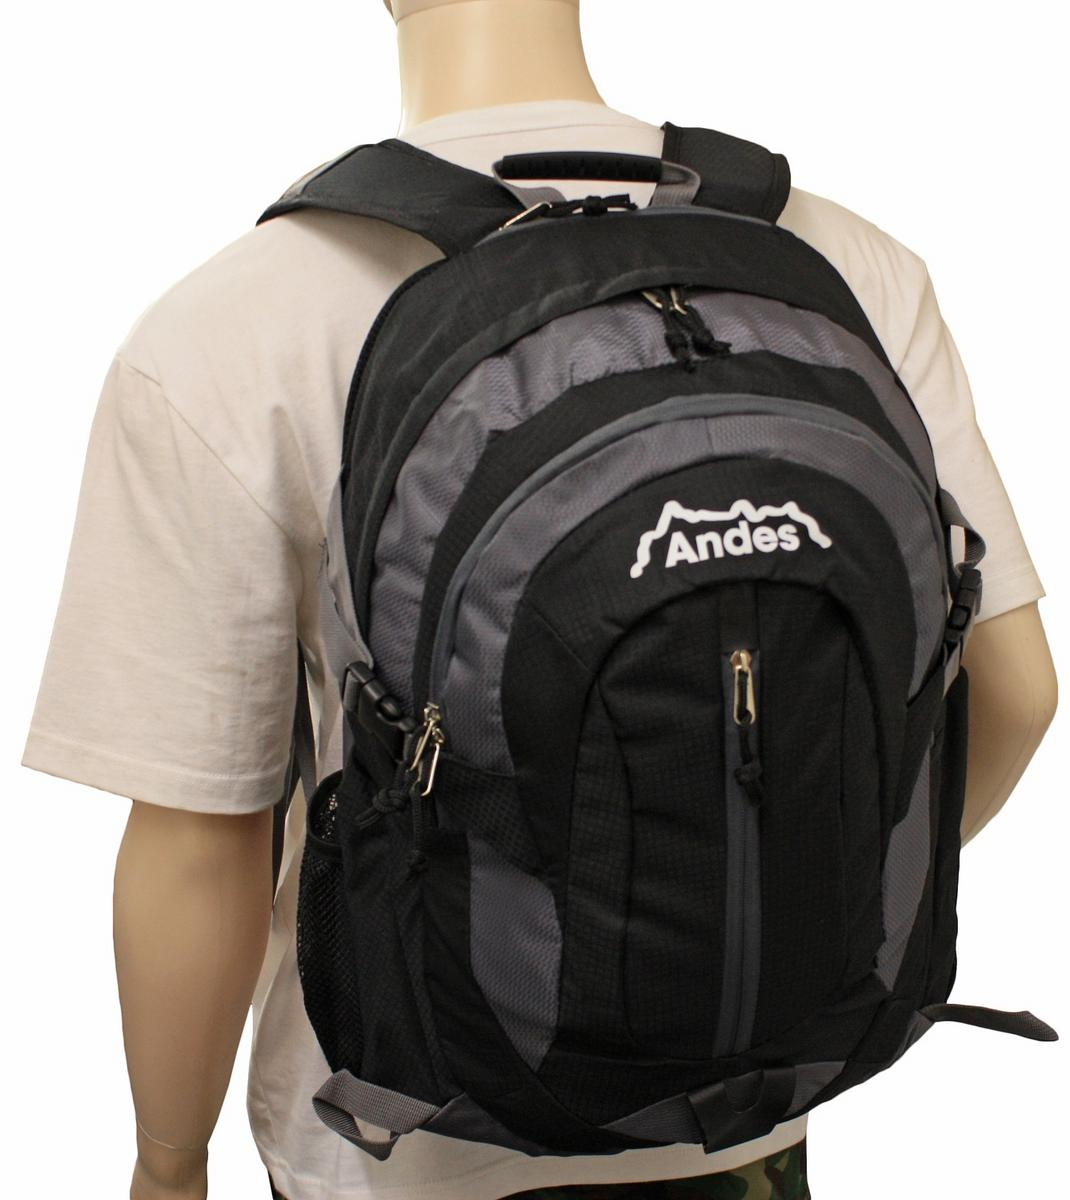 andes 35 litre backpack backpacks outdoor value. Black Bedroom Furniture Sets. Home Design Ideas